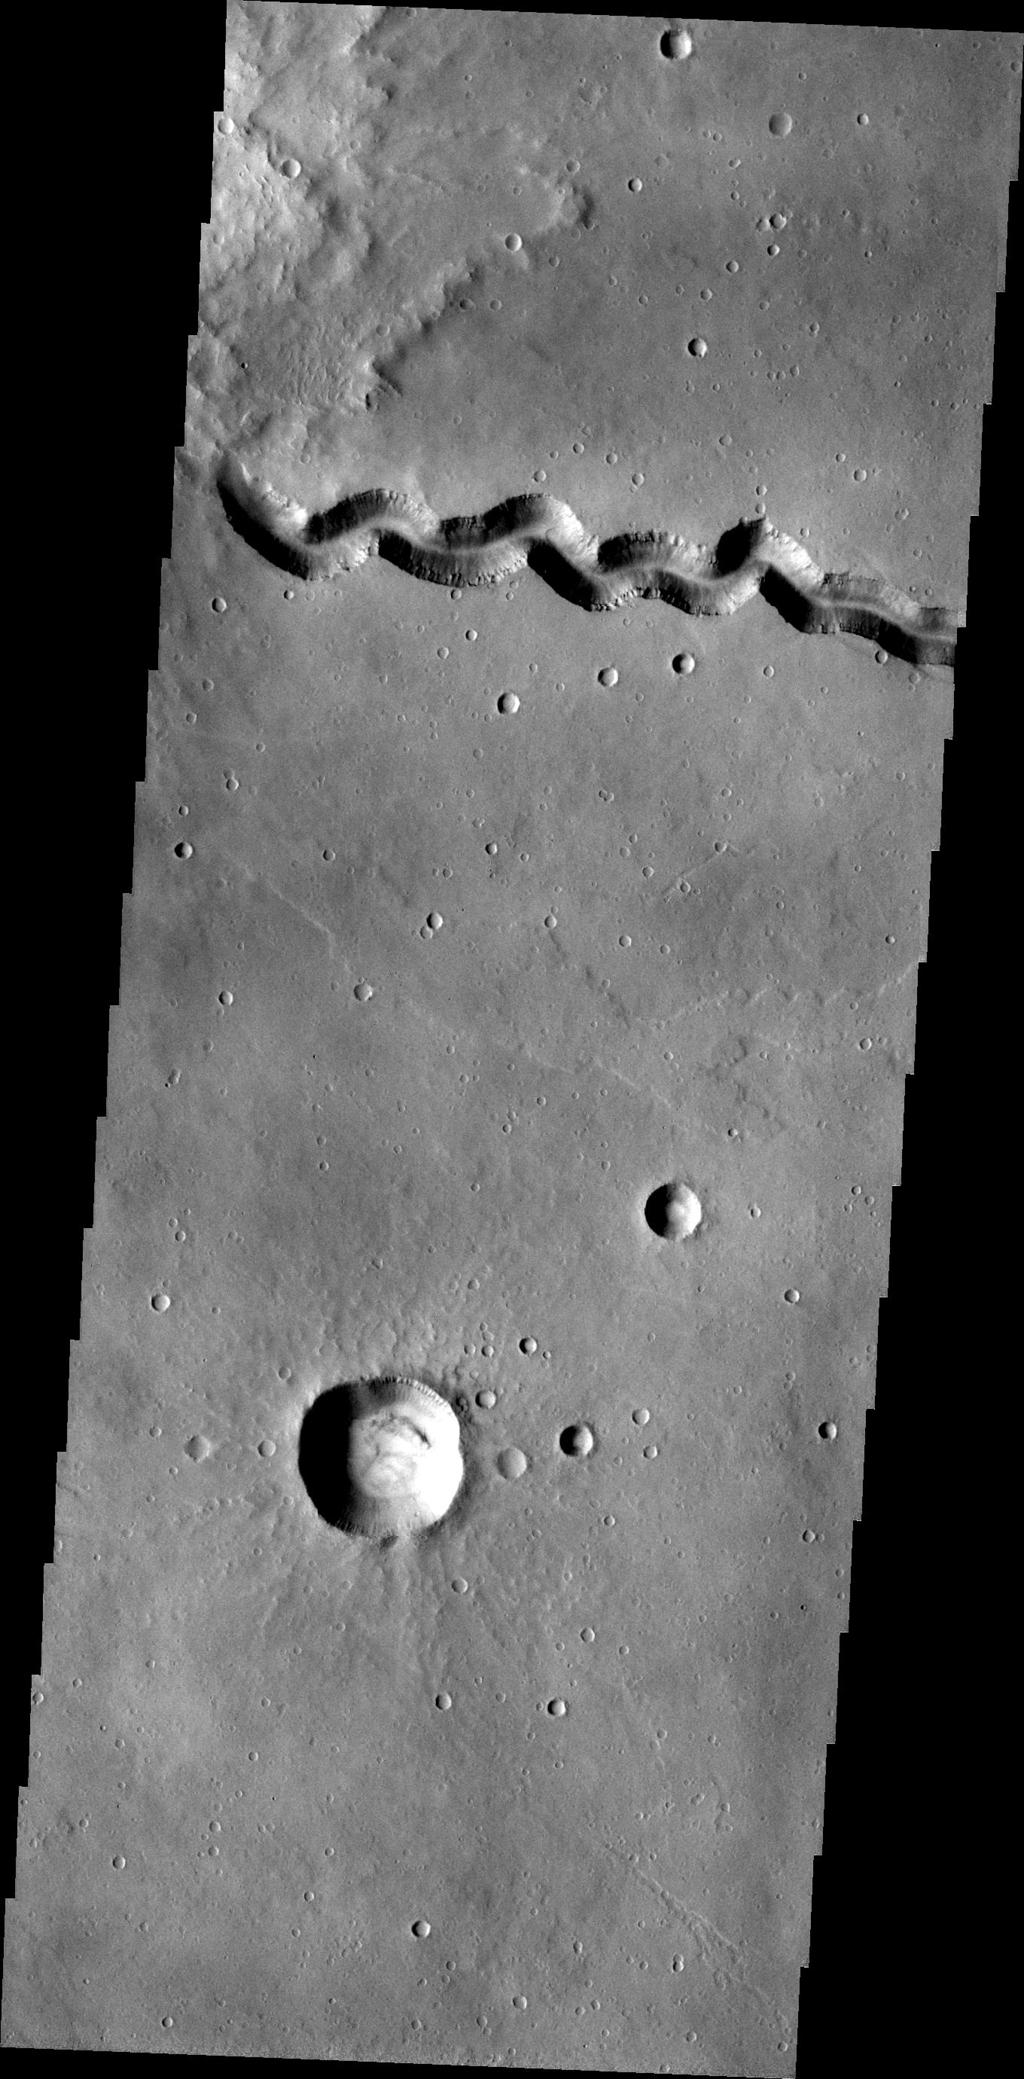 This image, taken by NASA's 2001 Mars Odyssey spacecraft, shows a portion of Patapsco Vallis, a channel located on the eastern margin of Elysium Mons.